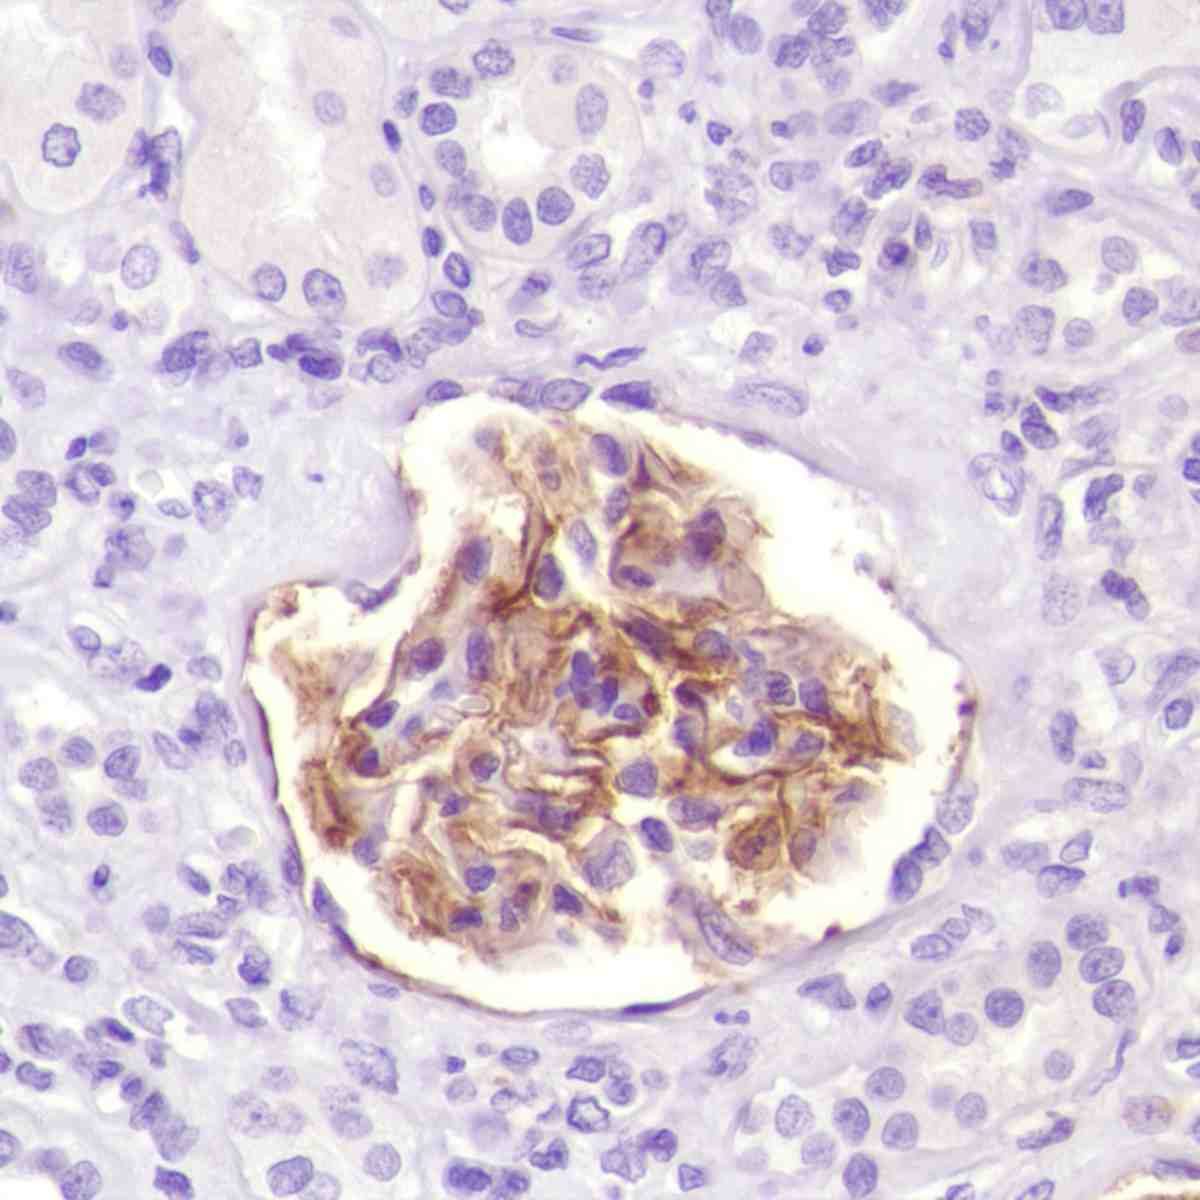 Human Kidney stained with anti-CD35 antibody